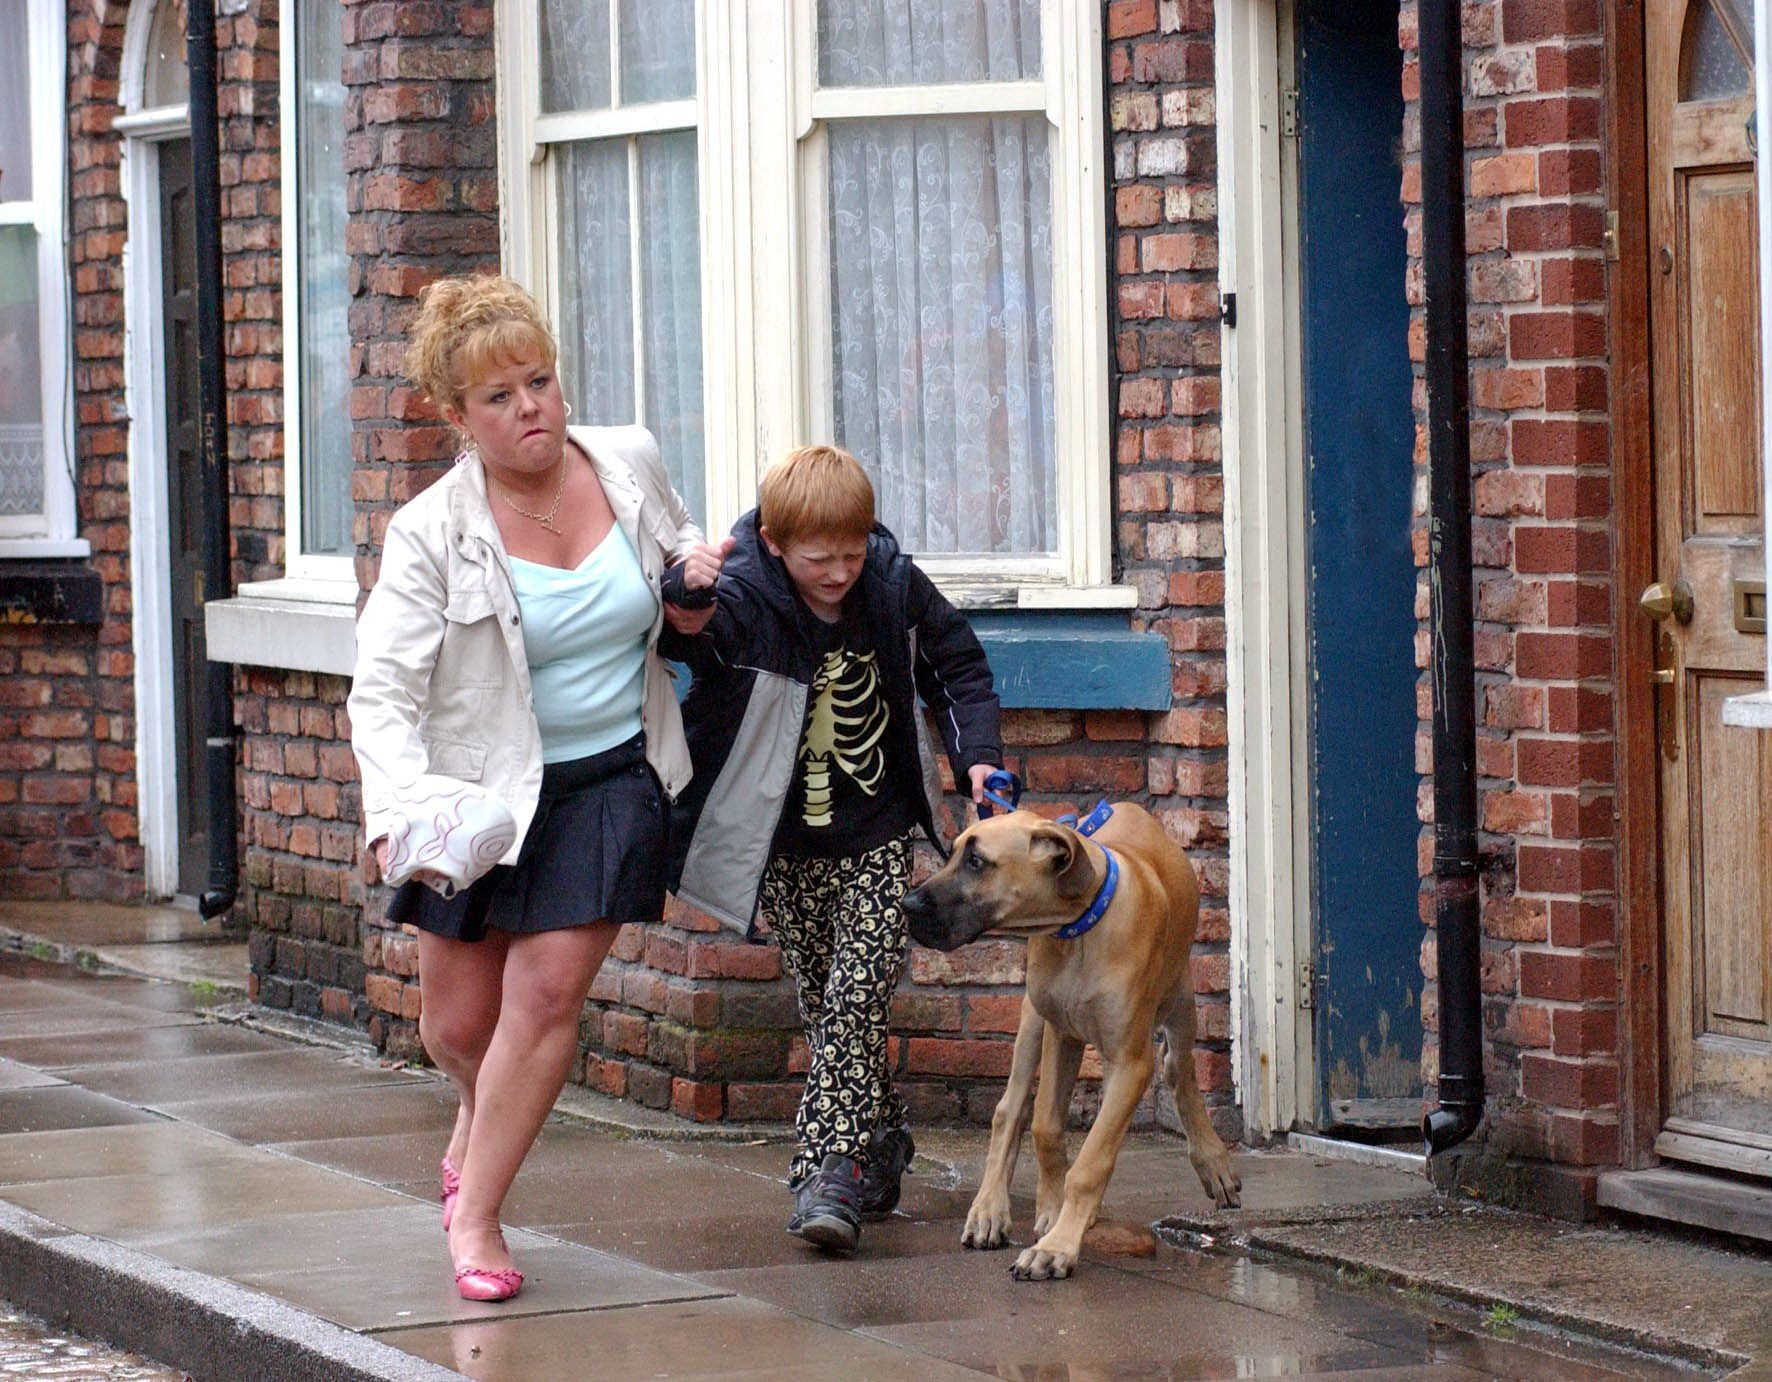 Editorial use only. Exclusive - Premium Rates Apply. Call your Account Manager for pricing. Mandatory Credit: Photo by ITV/REX/Shutterstock (710618lb) 'Coronation Street' TV - 2004 - After Janice's ultimatum Les has no choice but to send Chesney on his way. A furious Cilla grabs him by the hand and drags him down the street with Schmeichel in tow. Cilla Brown [Wendi Peters], Chesney Brown [Sam Aston] and Schmeichel [Great Dane]. ITV ARCHIVE